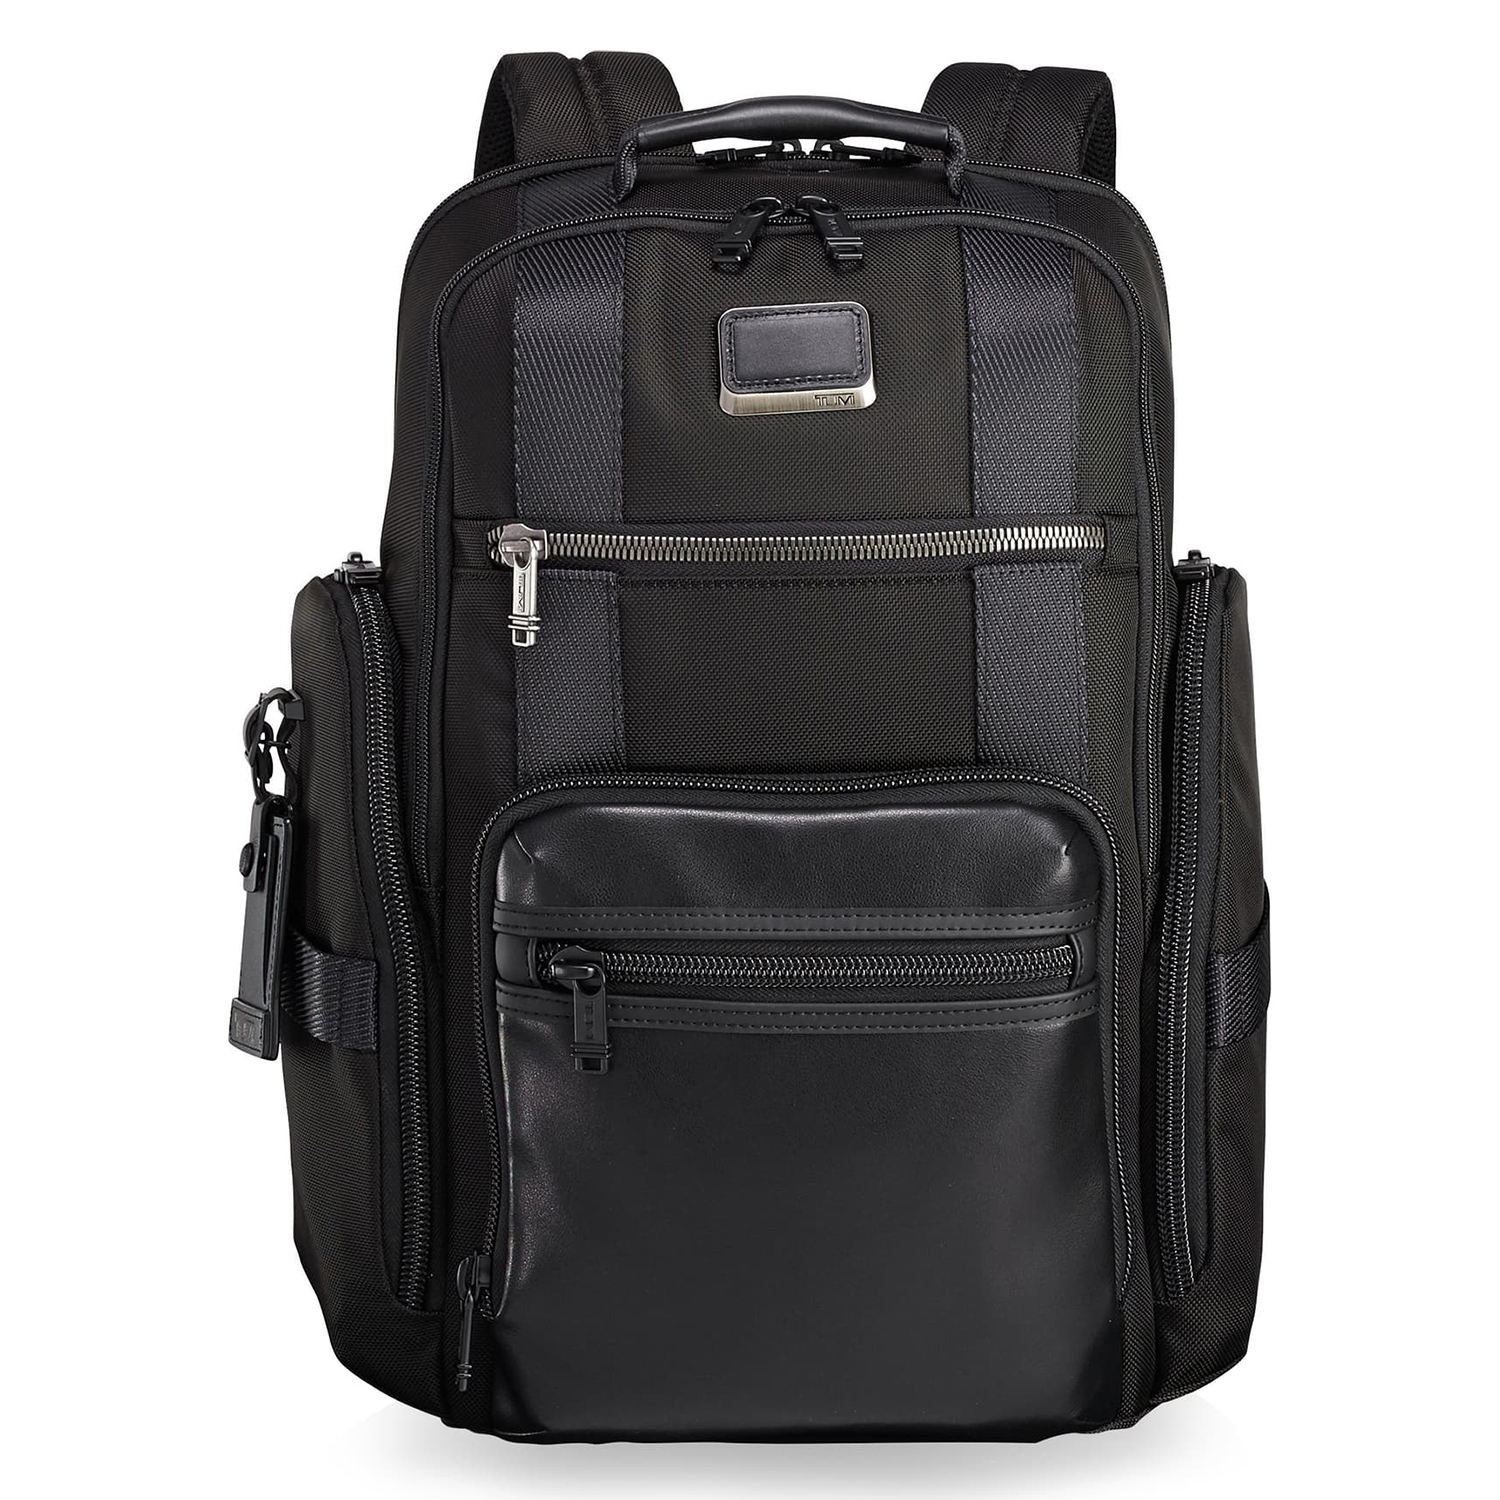 Alpha Bravo - Sheppard Deluxe Backpack TUMI